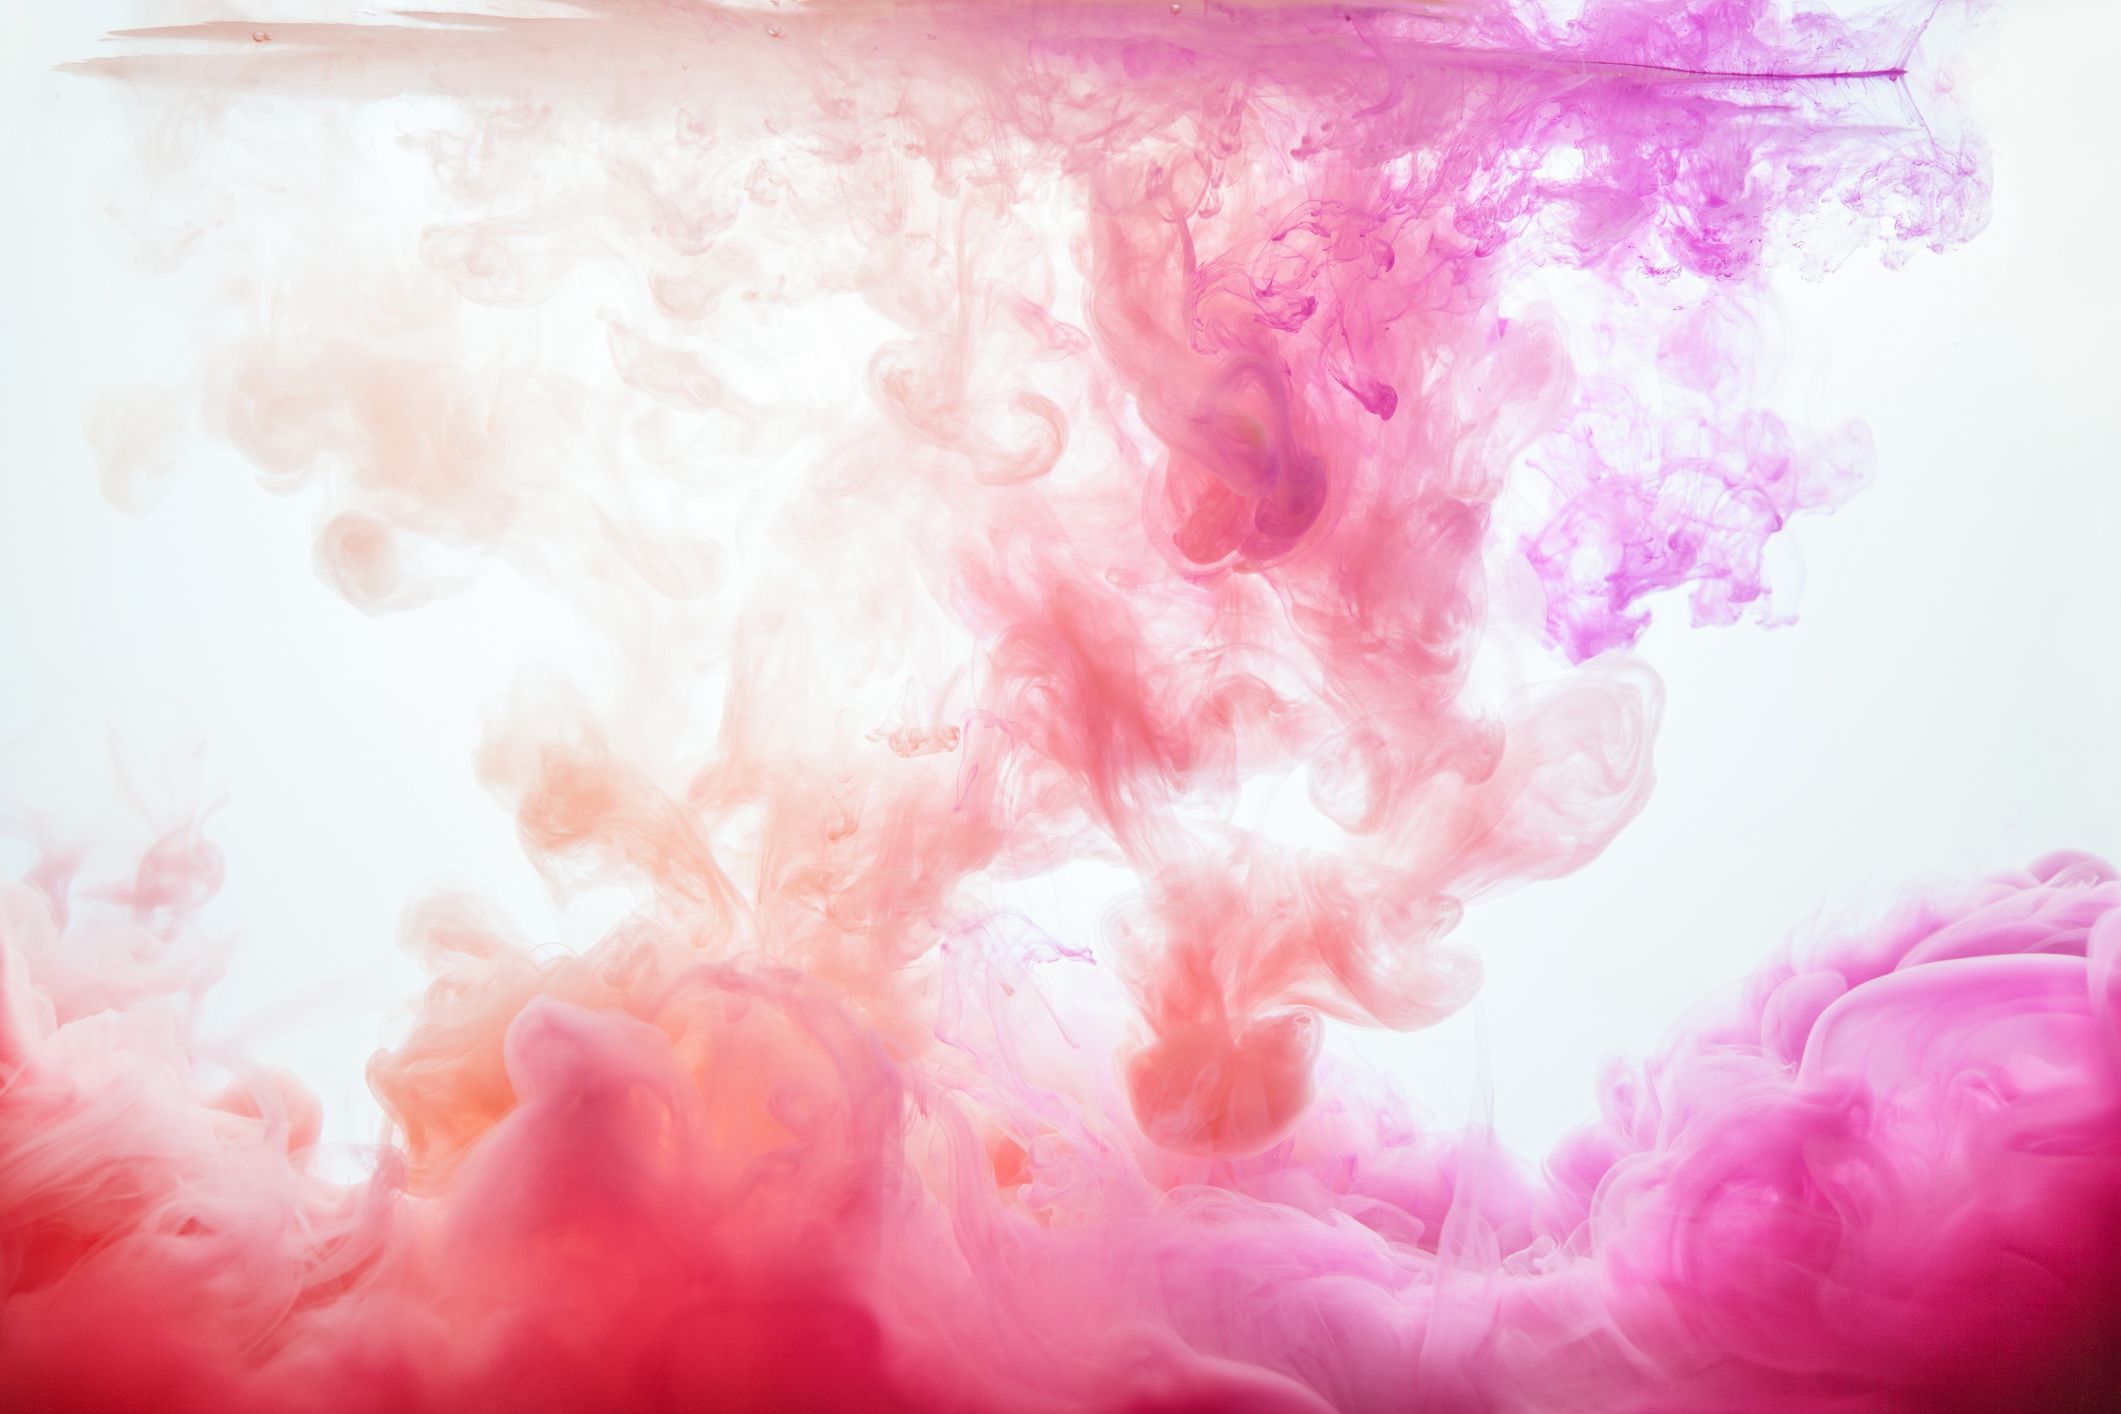 A flow of colourful pink paint (Thinkstock/PA)